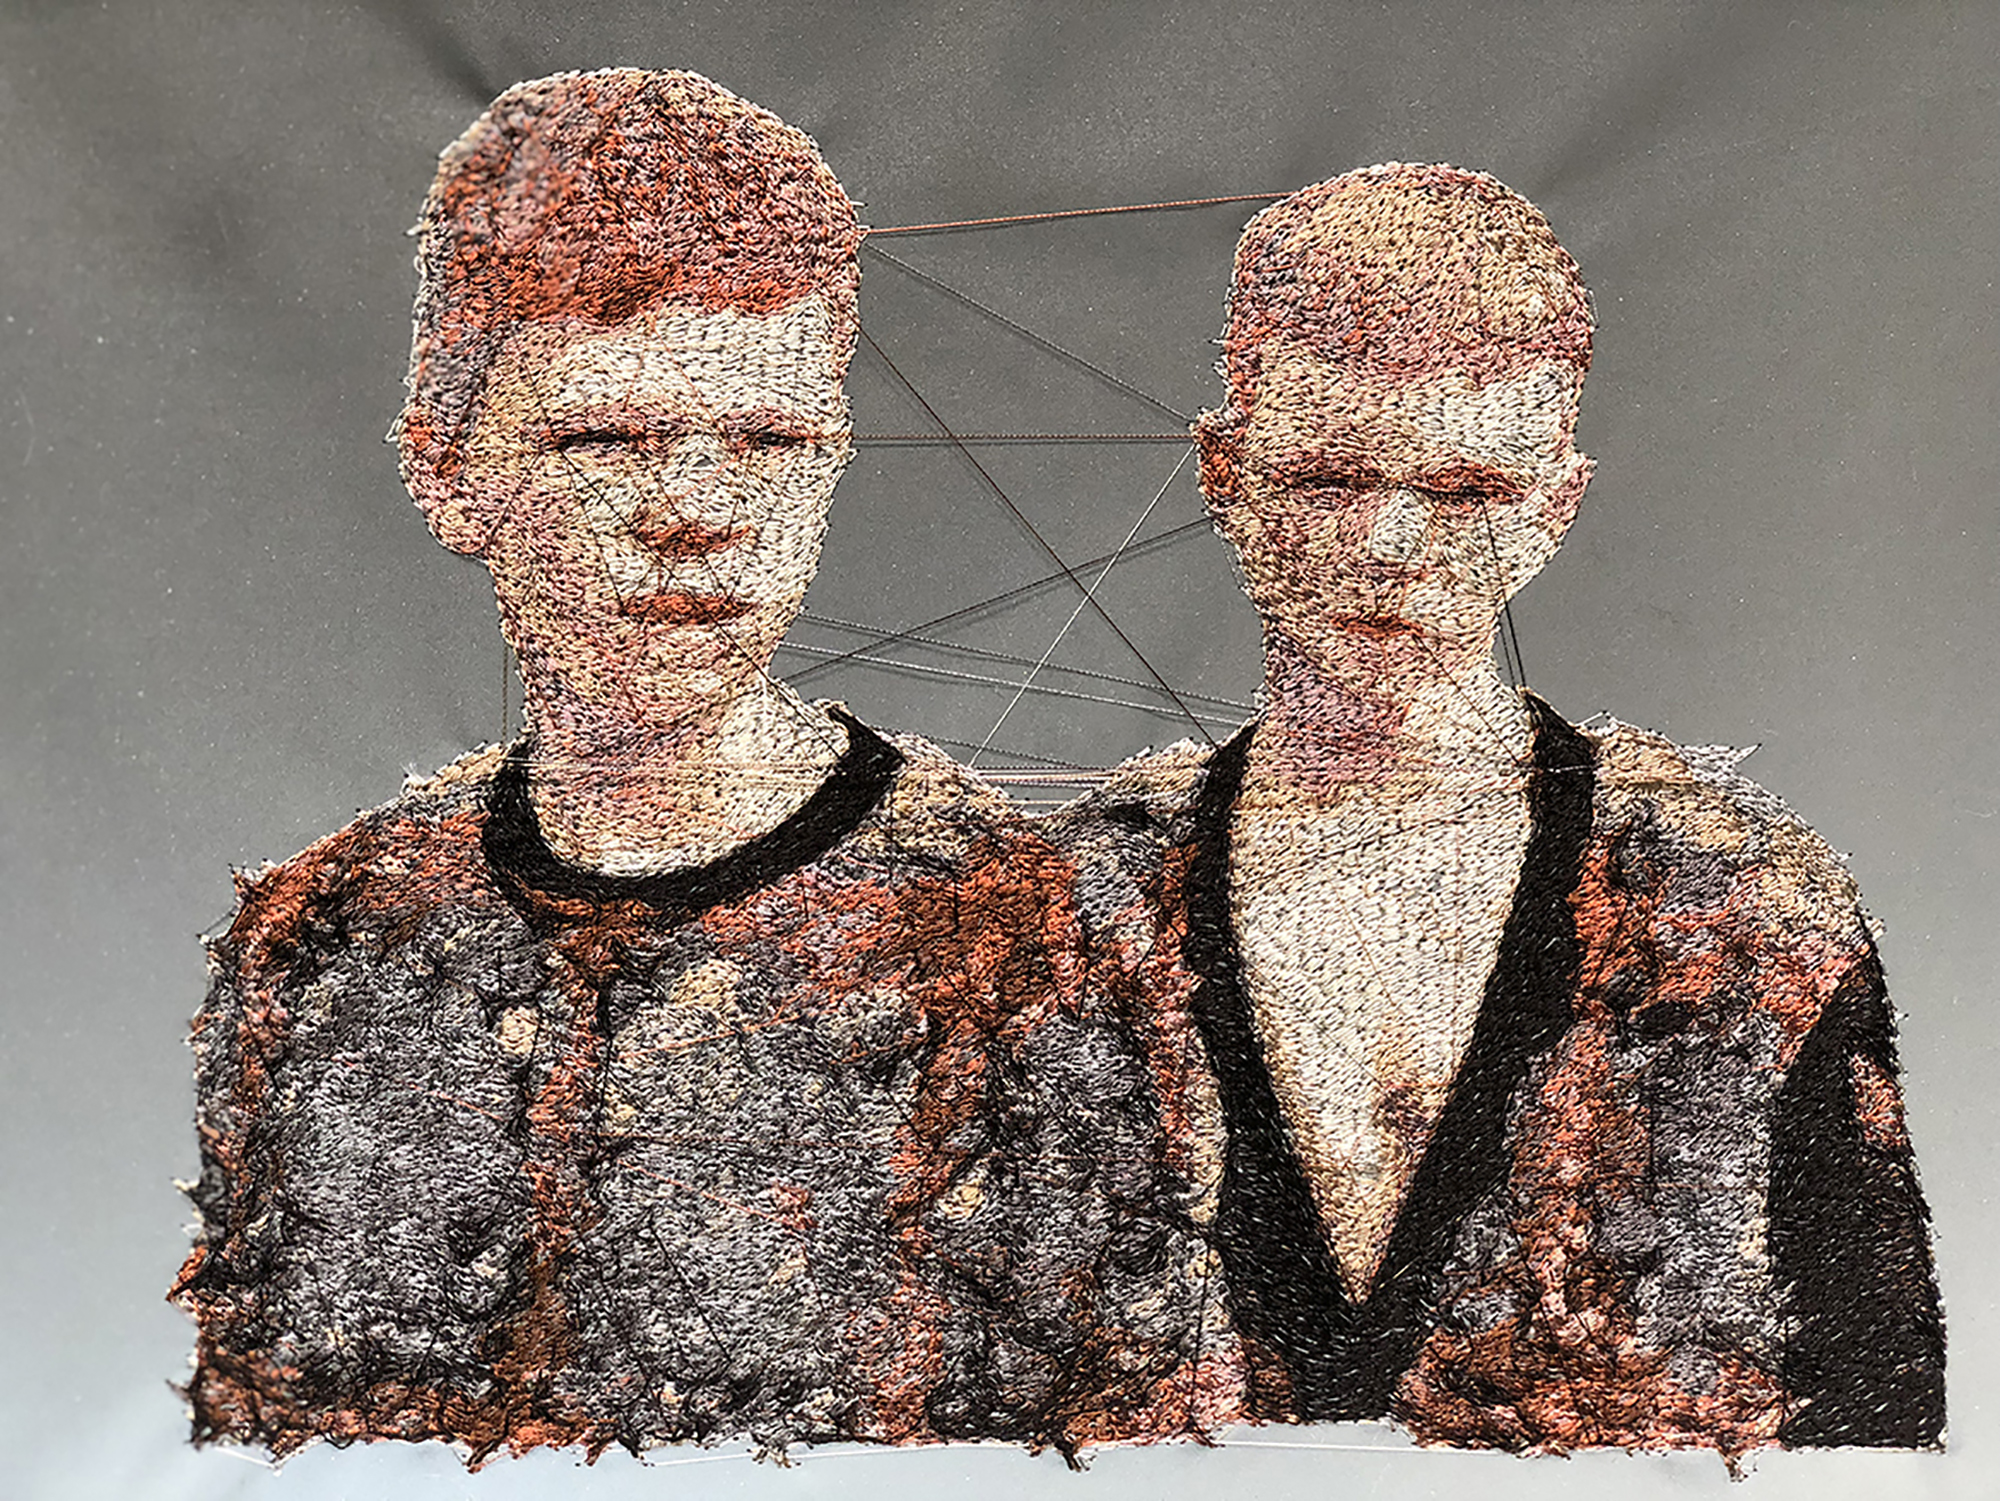 "2_Traveller_Boys_embroidery_14"" X 11"" X 2""_2019_$700.jpg"